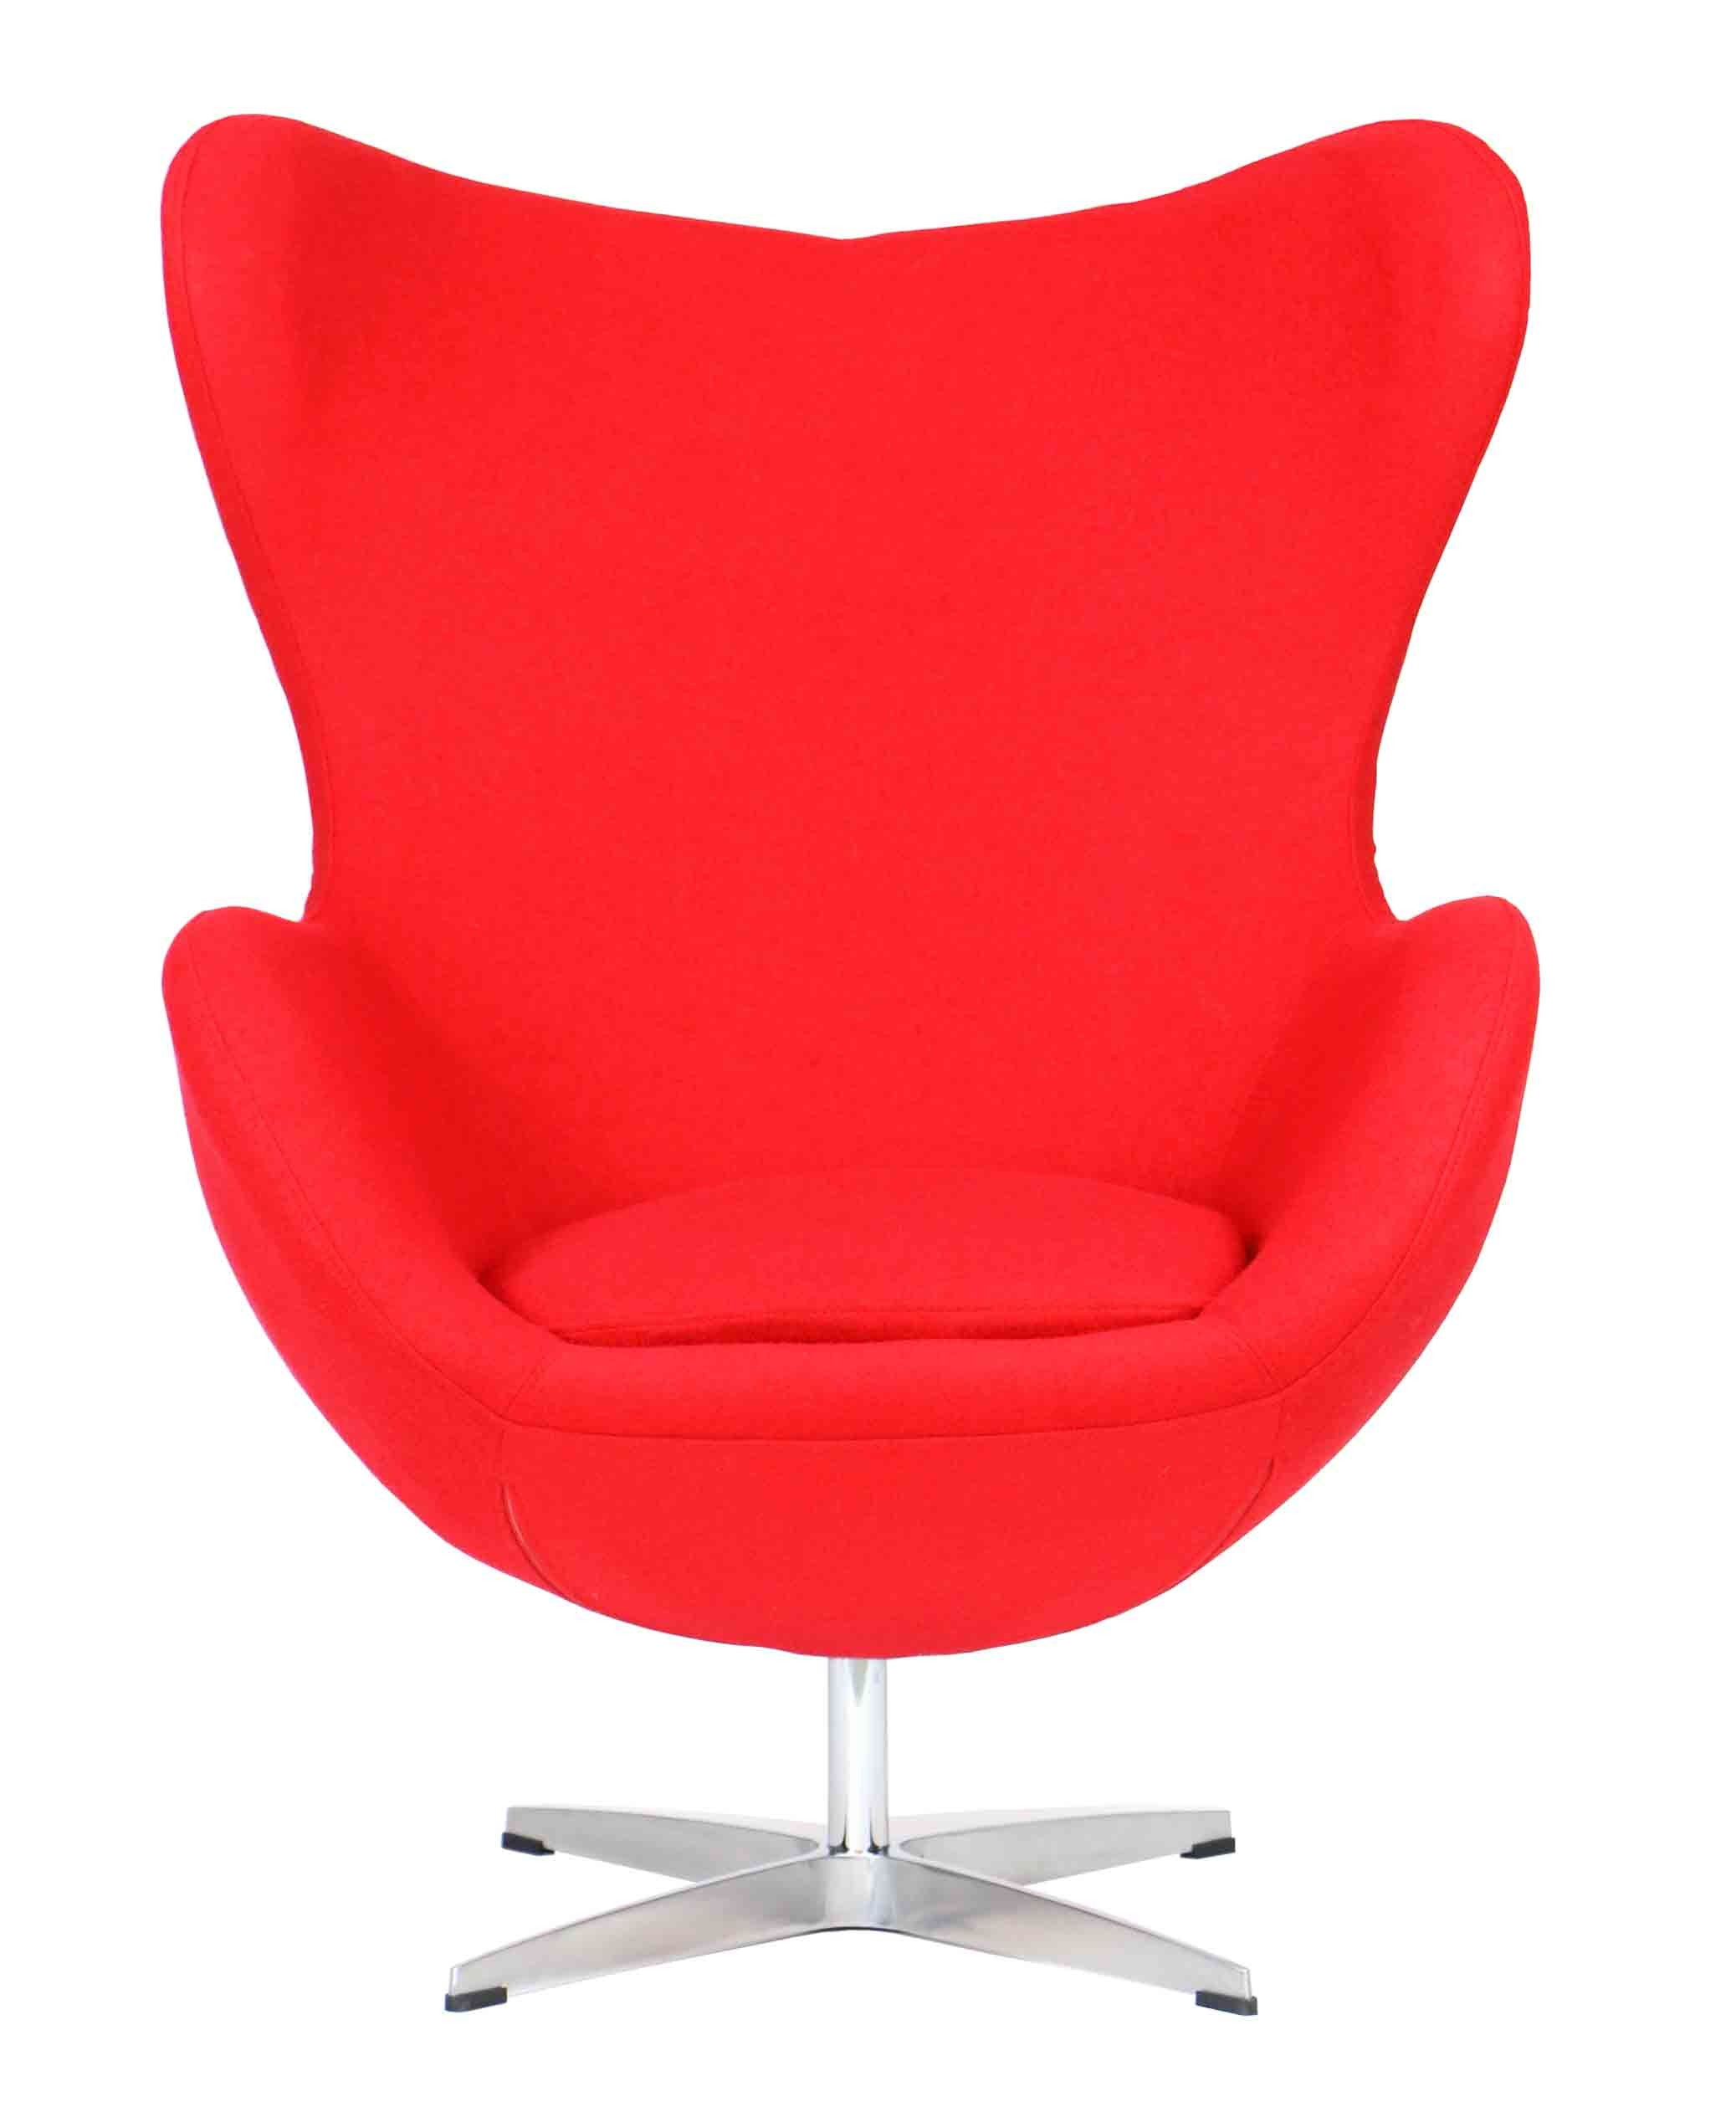 Designer Replica Egg Chair In Red Furniture Home Décor Fortytwo